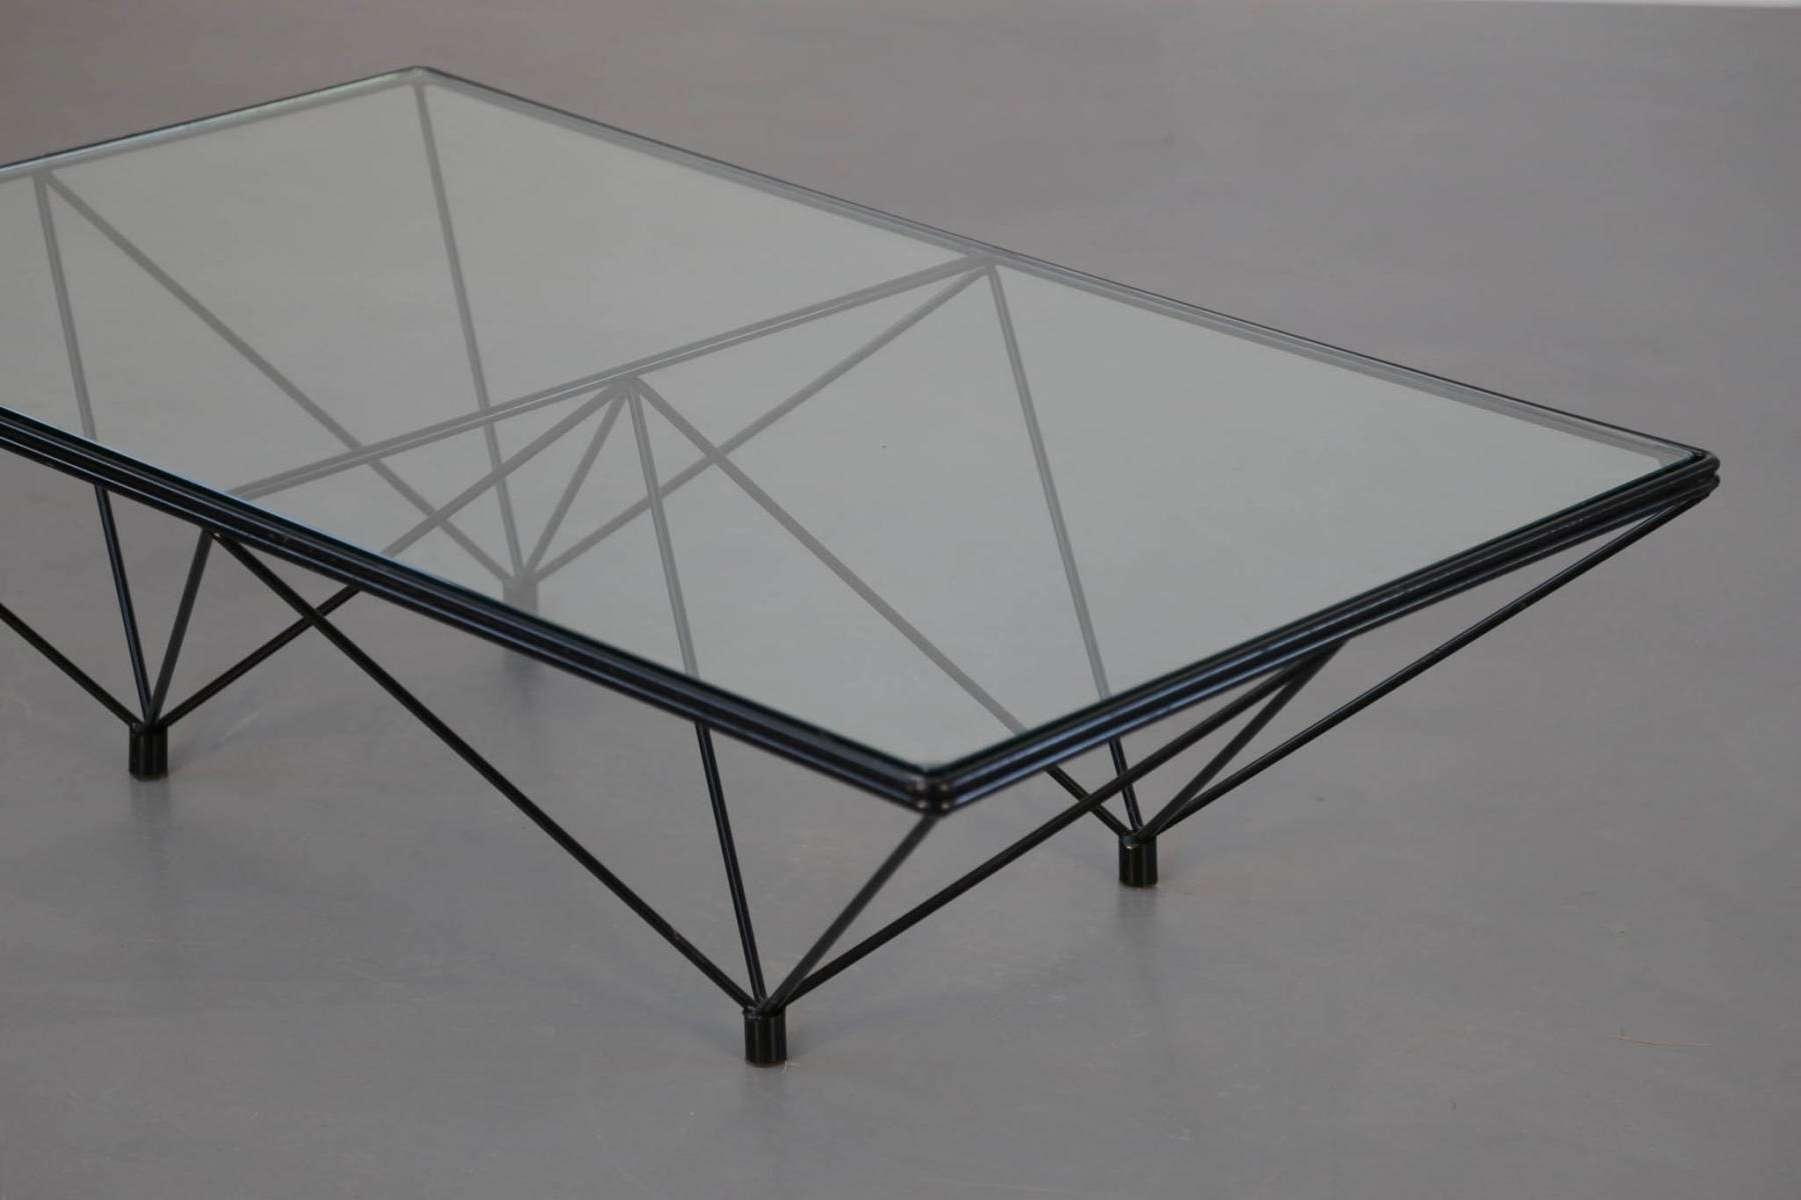 Coffee Tables : Chrome Glass End Tables Small Coffee Black Table Pertaining To Most Current Glass And Black Coffee Tables (View 20 of 20)